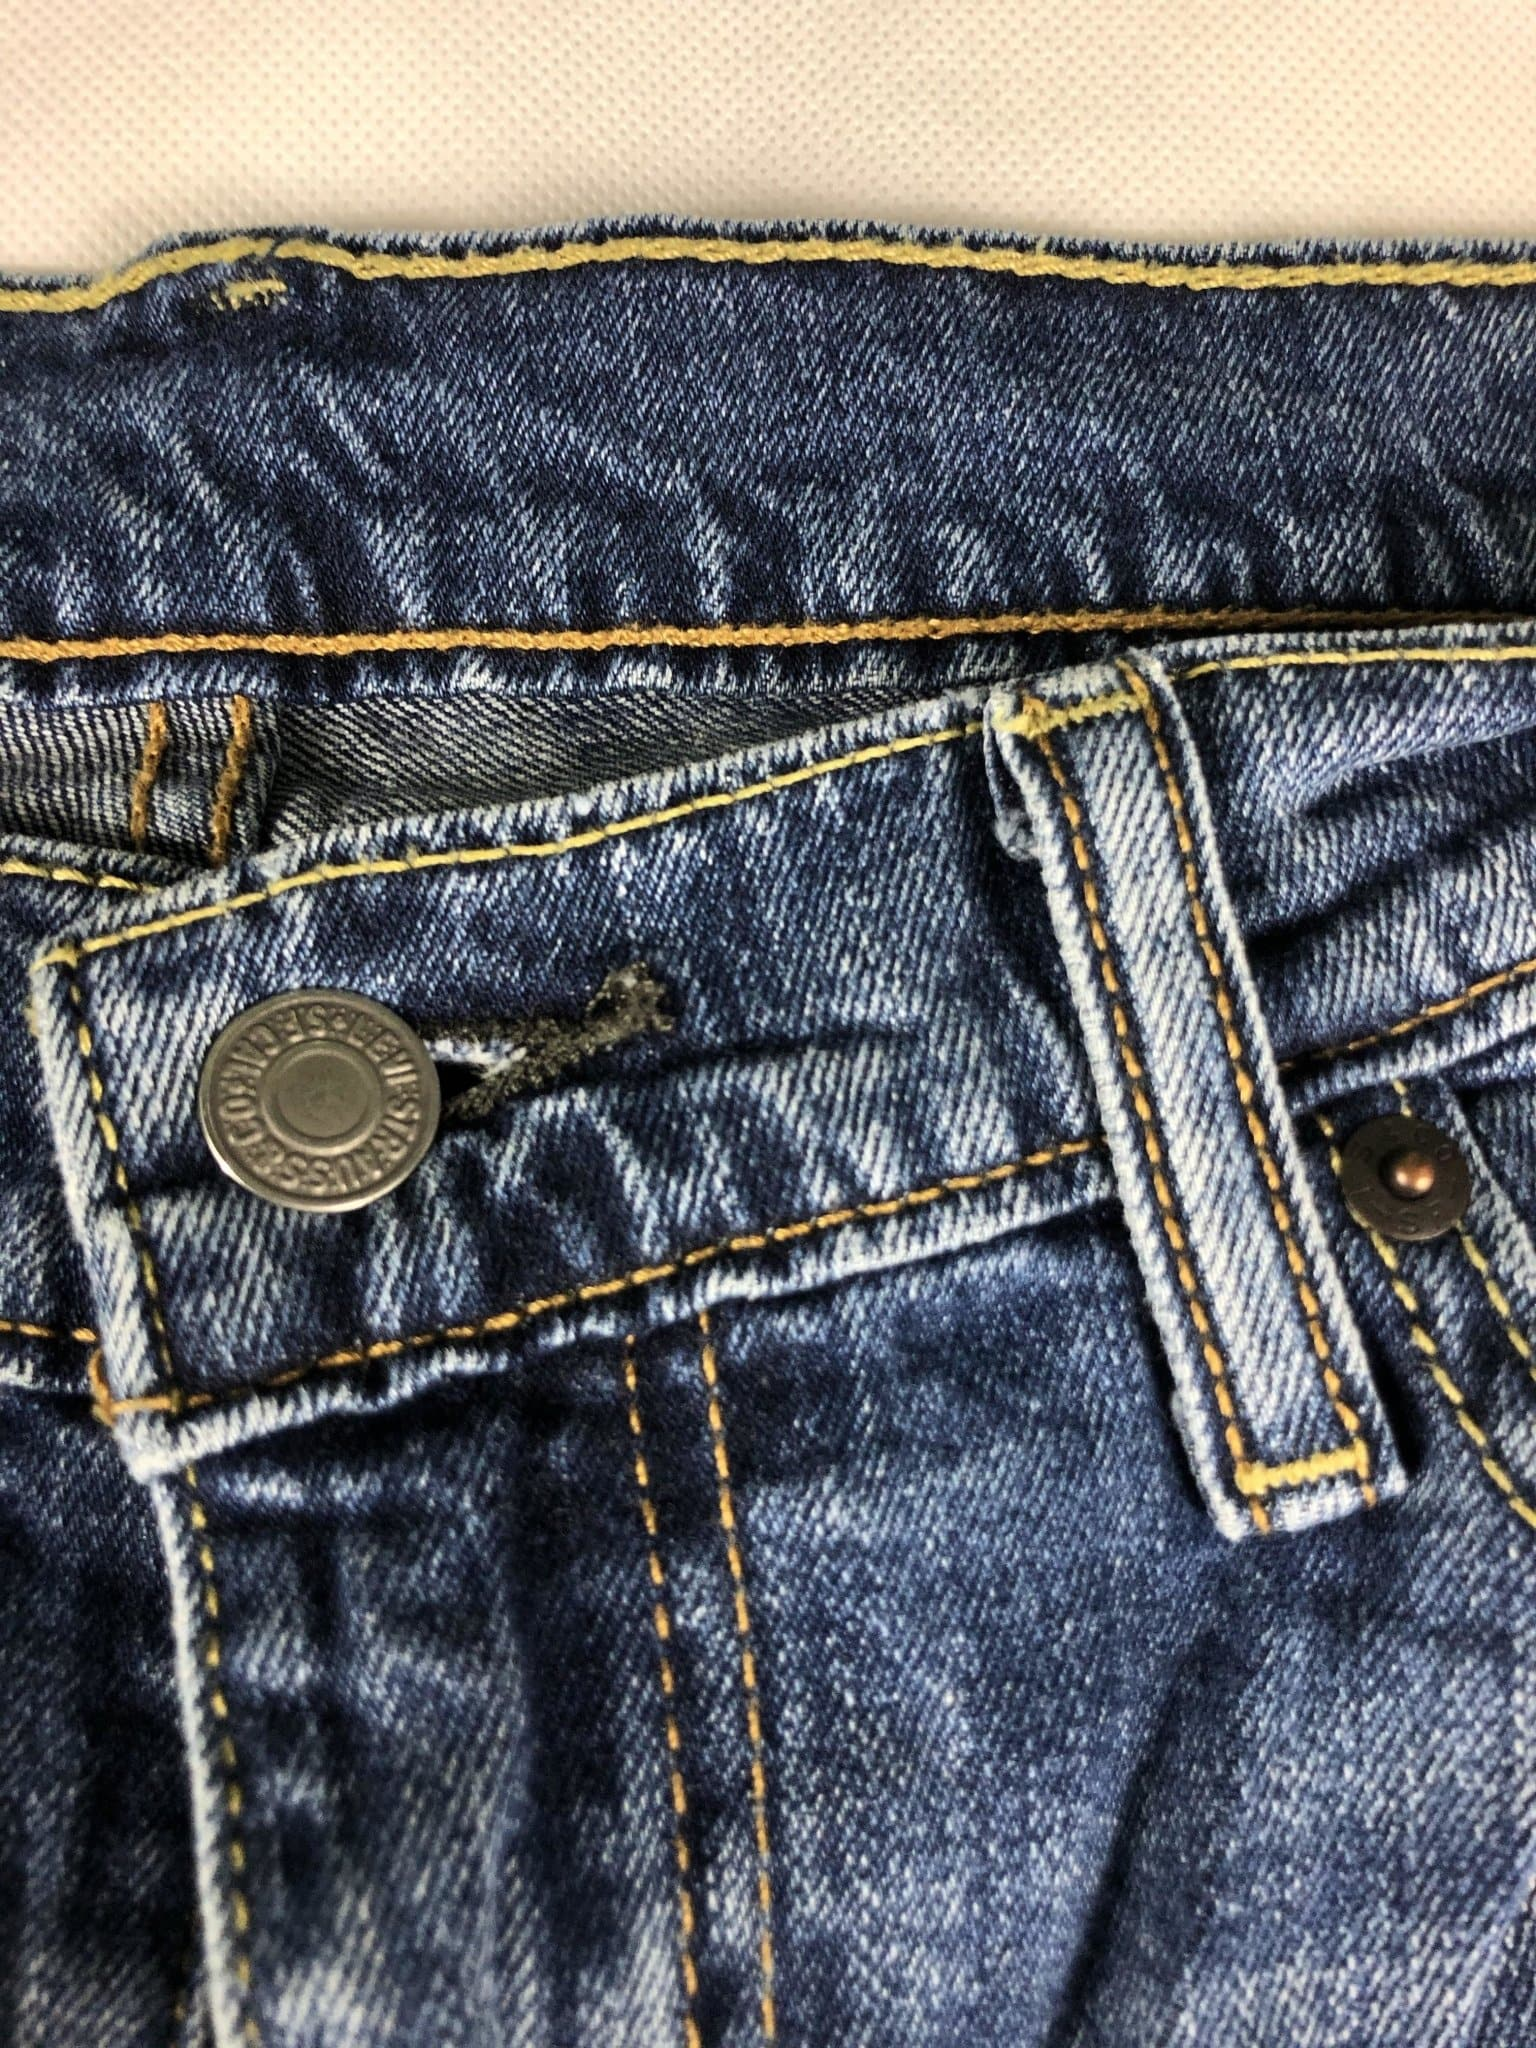 Vintage Levi's 514 Jeans W36 L32 (M15) - Discounted Deals UK